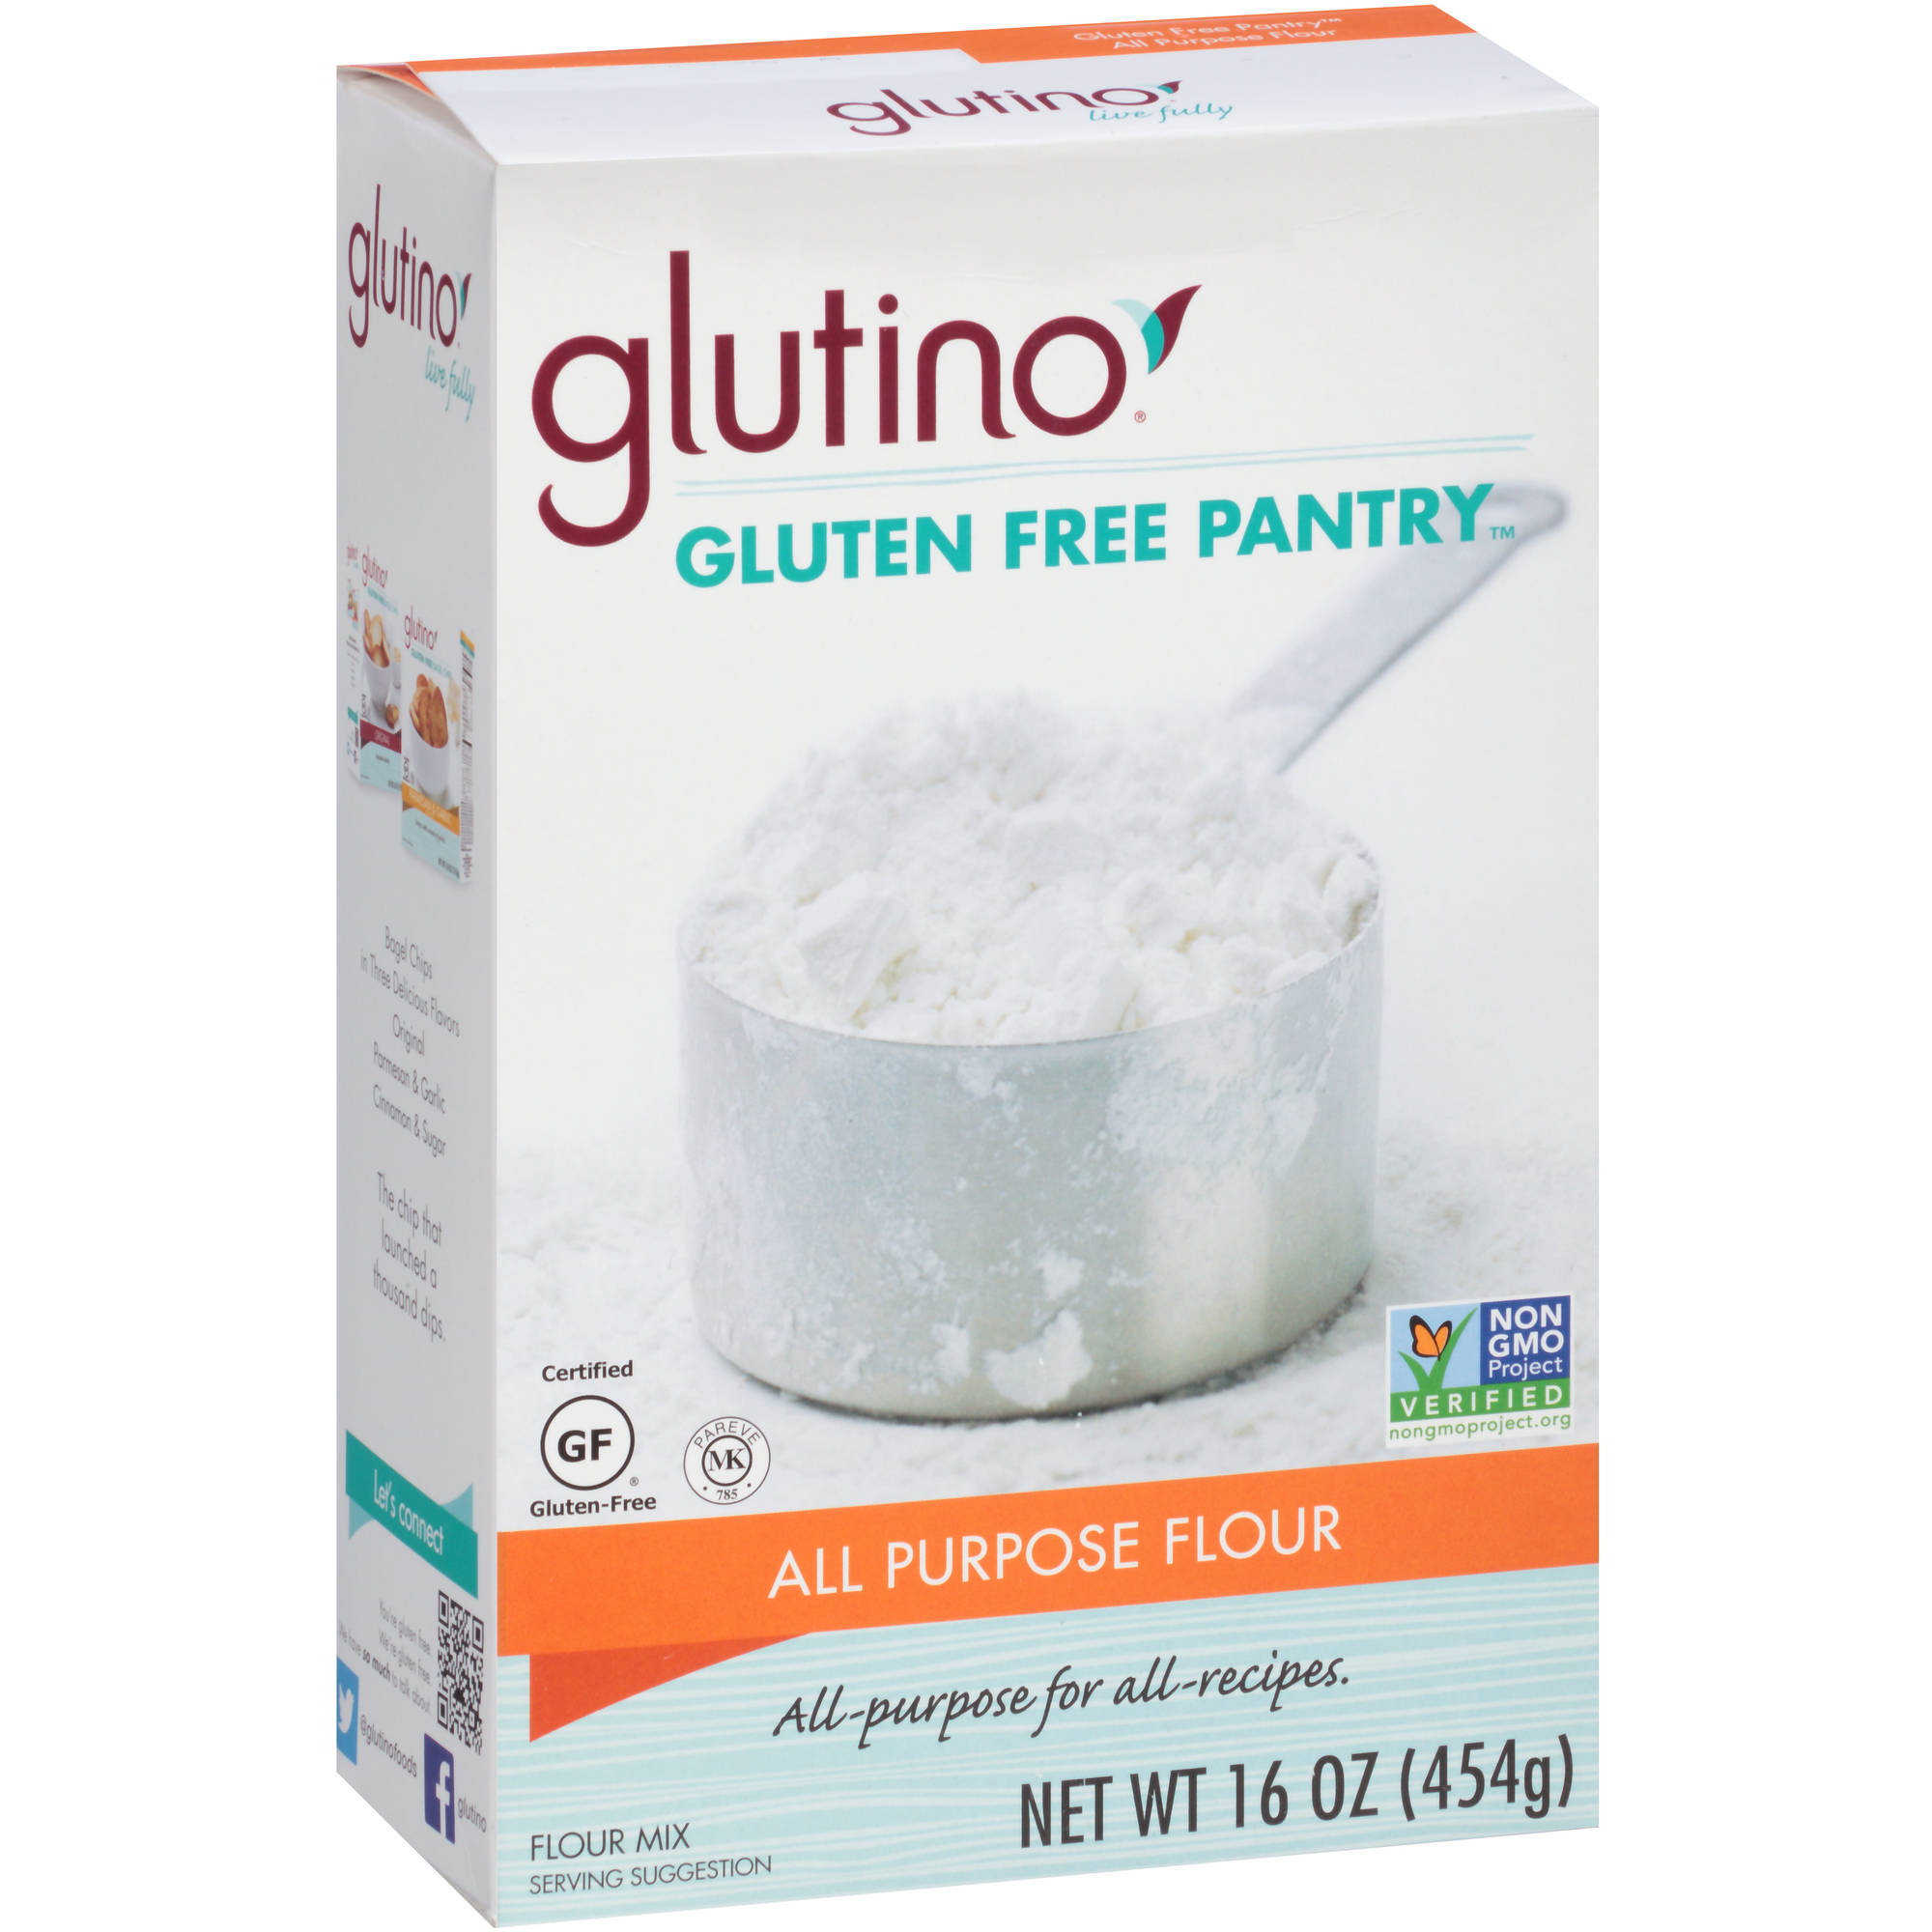 Glutino Gluten Free Pantry All Purpose F